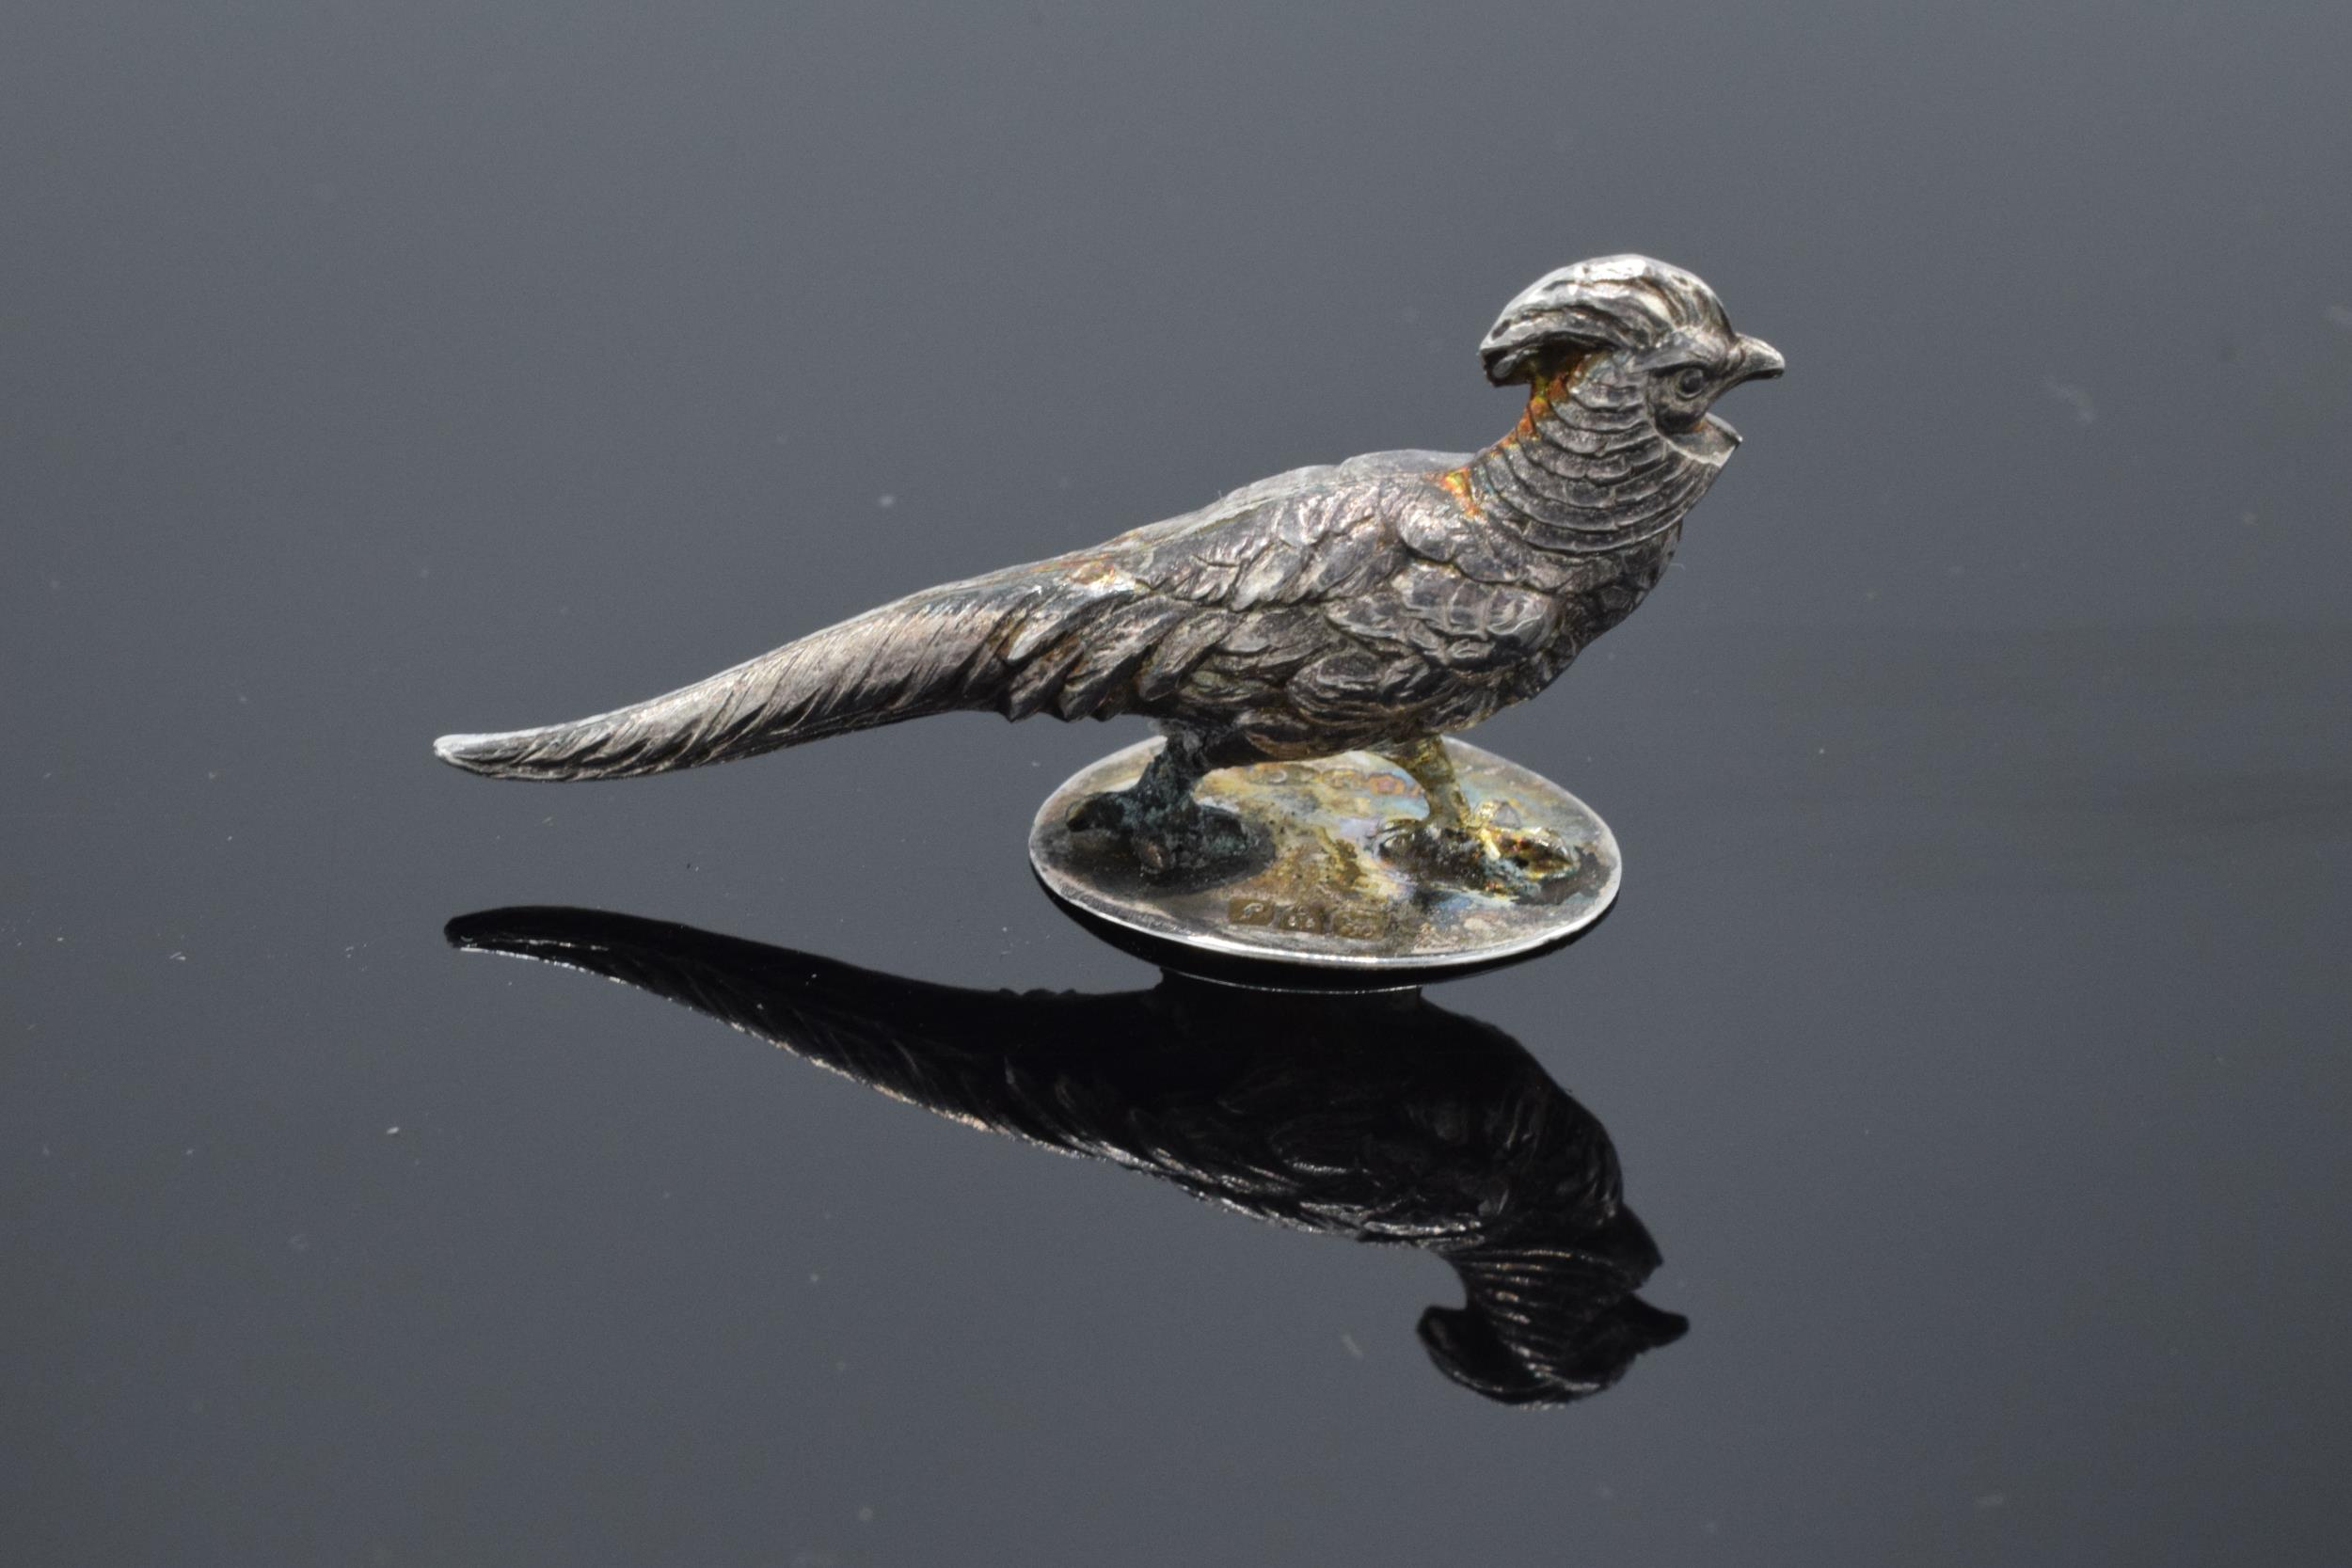 Sampson Mordan & Co Edwardian silver miniature pheasant, hallmarked Chester 1909. Approx 42mm in - Image 2 of 5